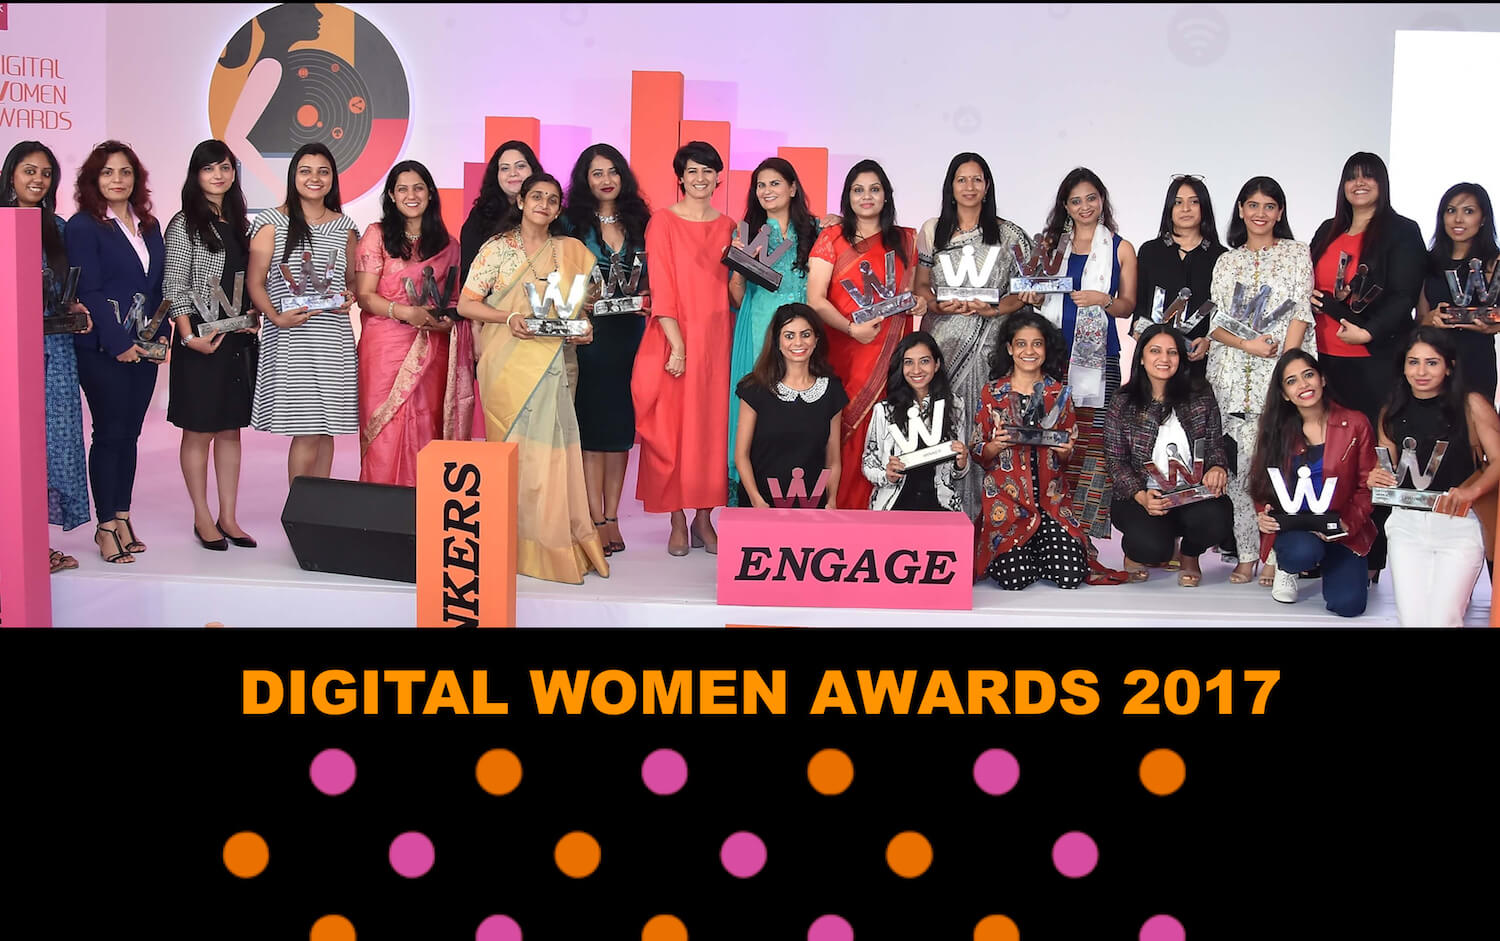 Digital Women Awards 2017